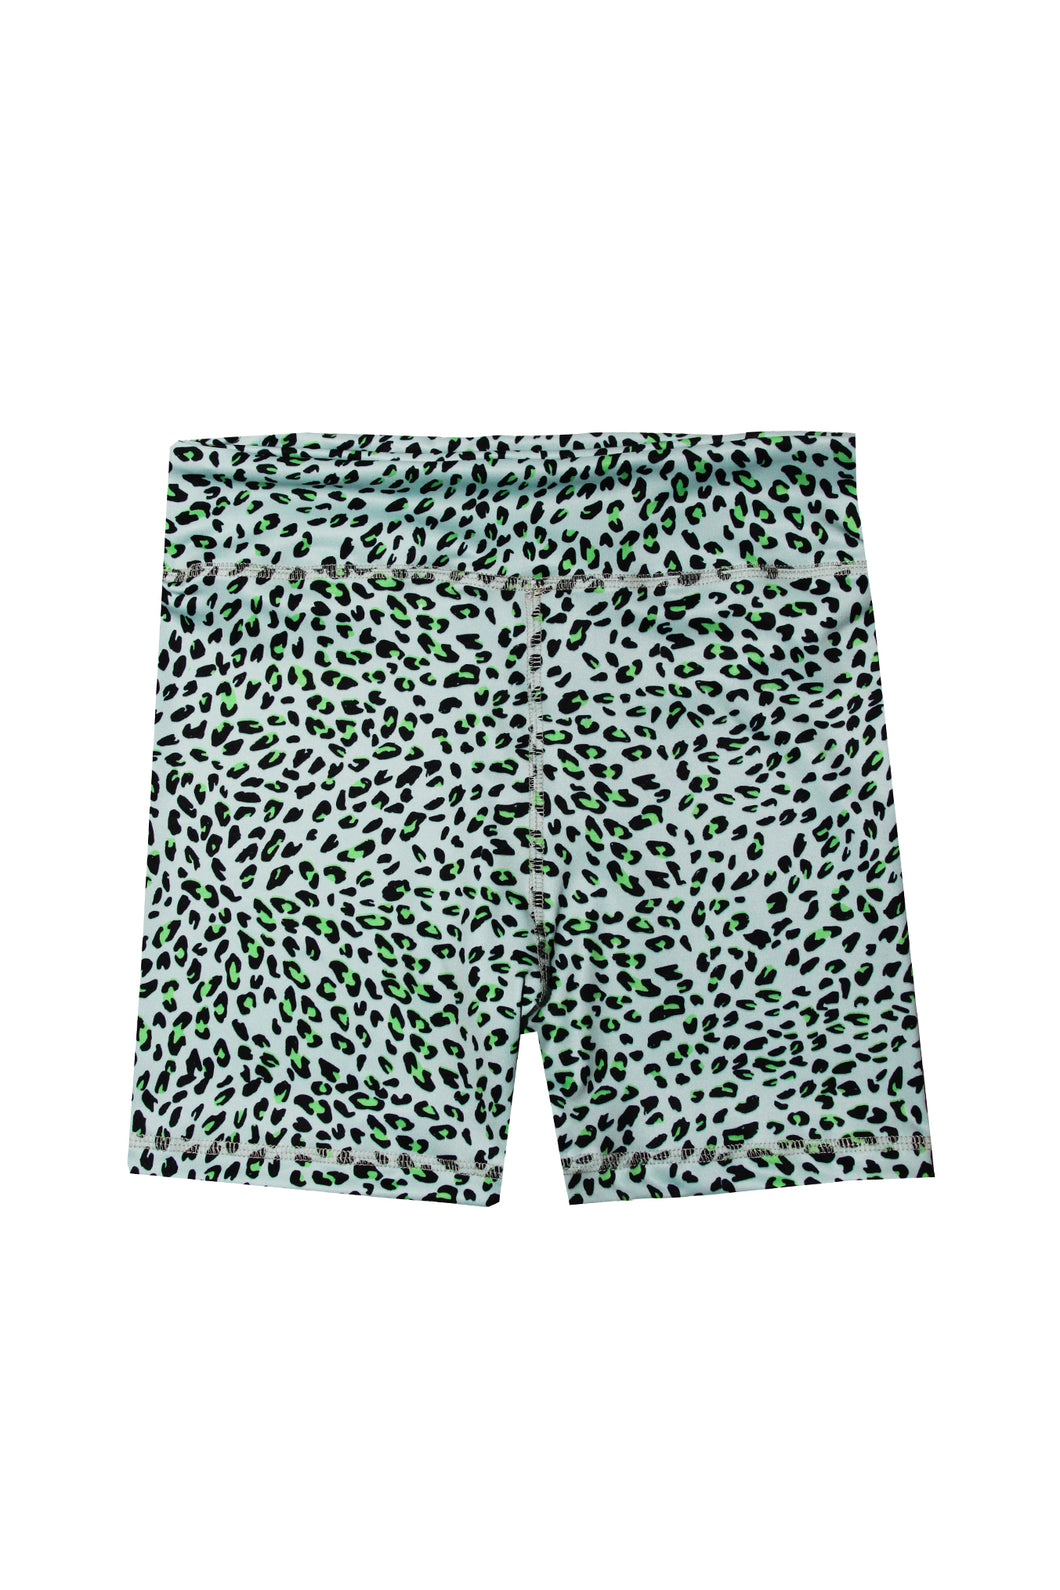 Cheetah Workout Shorts